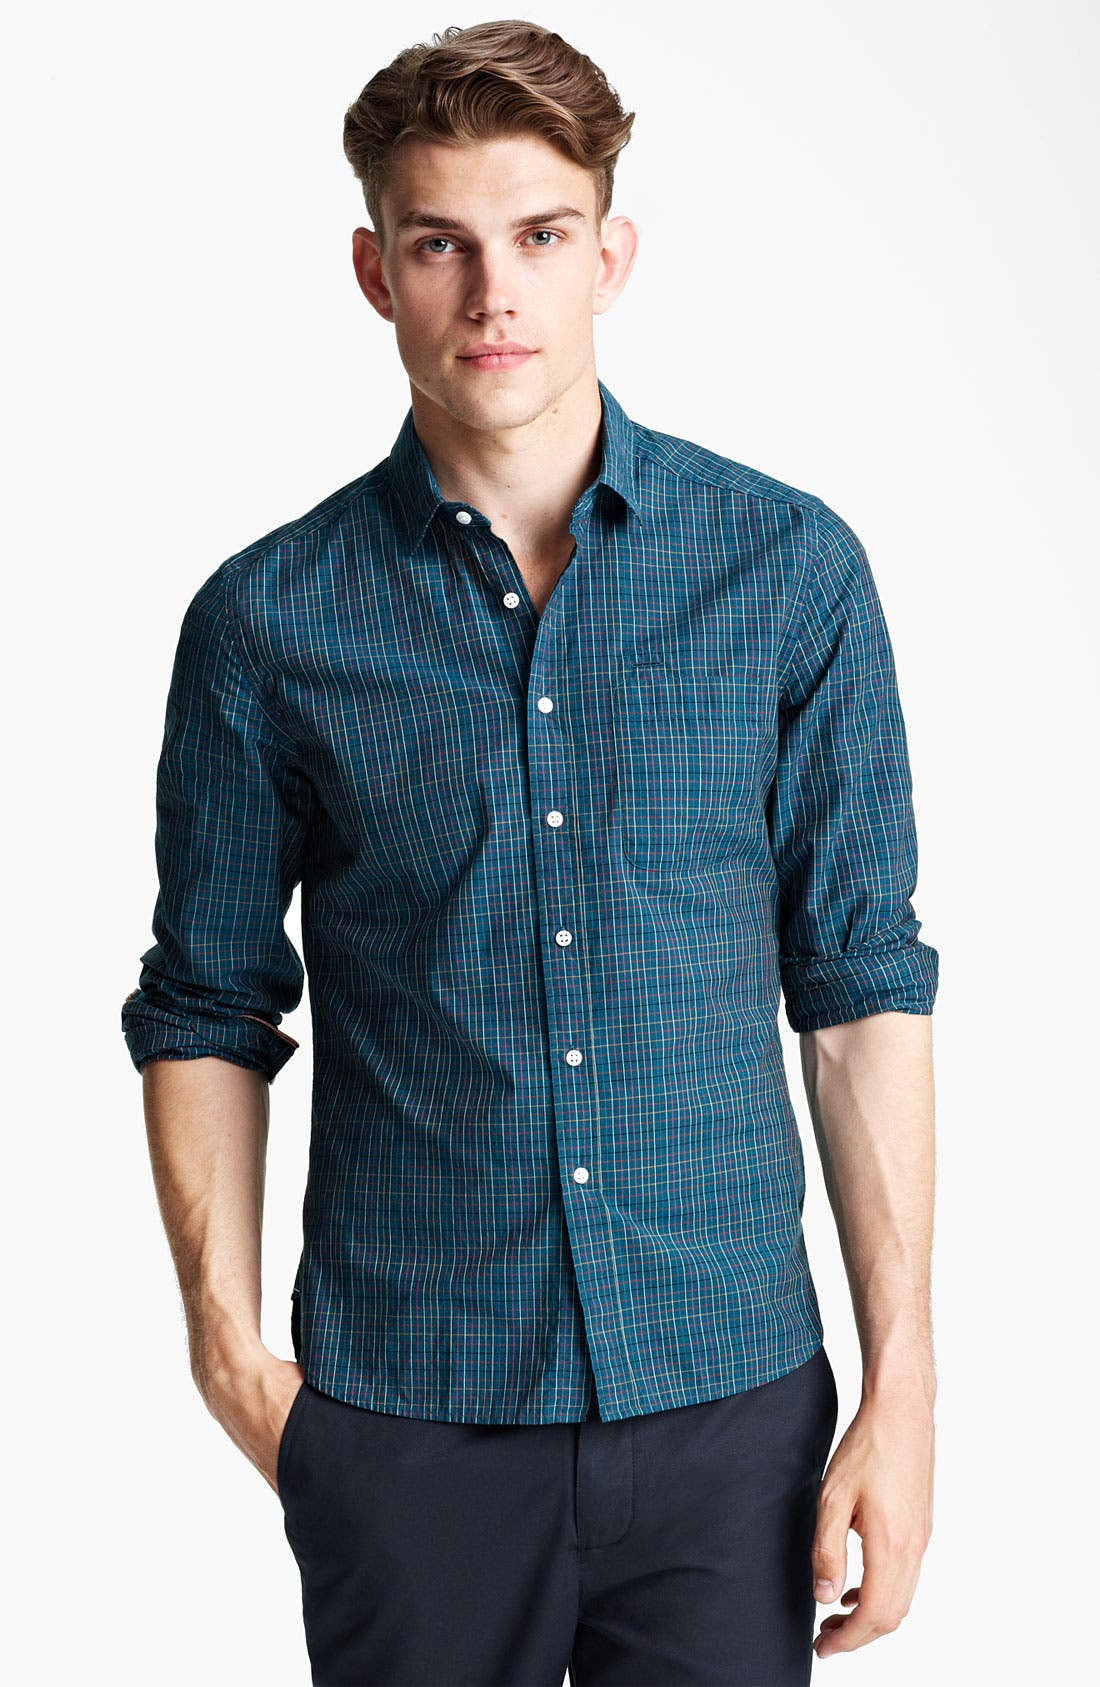 Alternate Image 1 Selected - Shipley & Halmos Plaid Woven Shirt